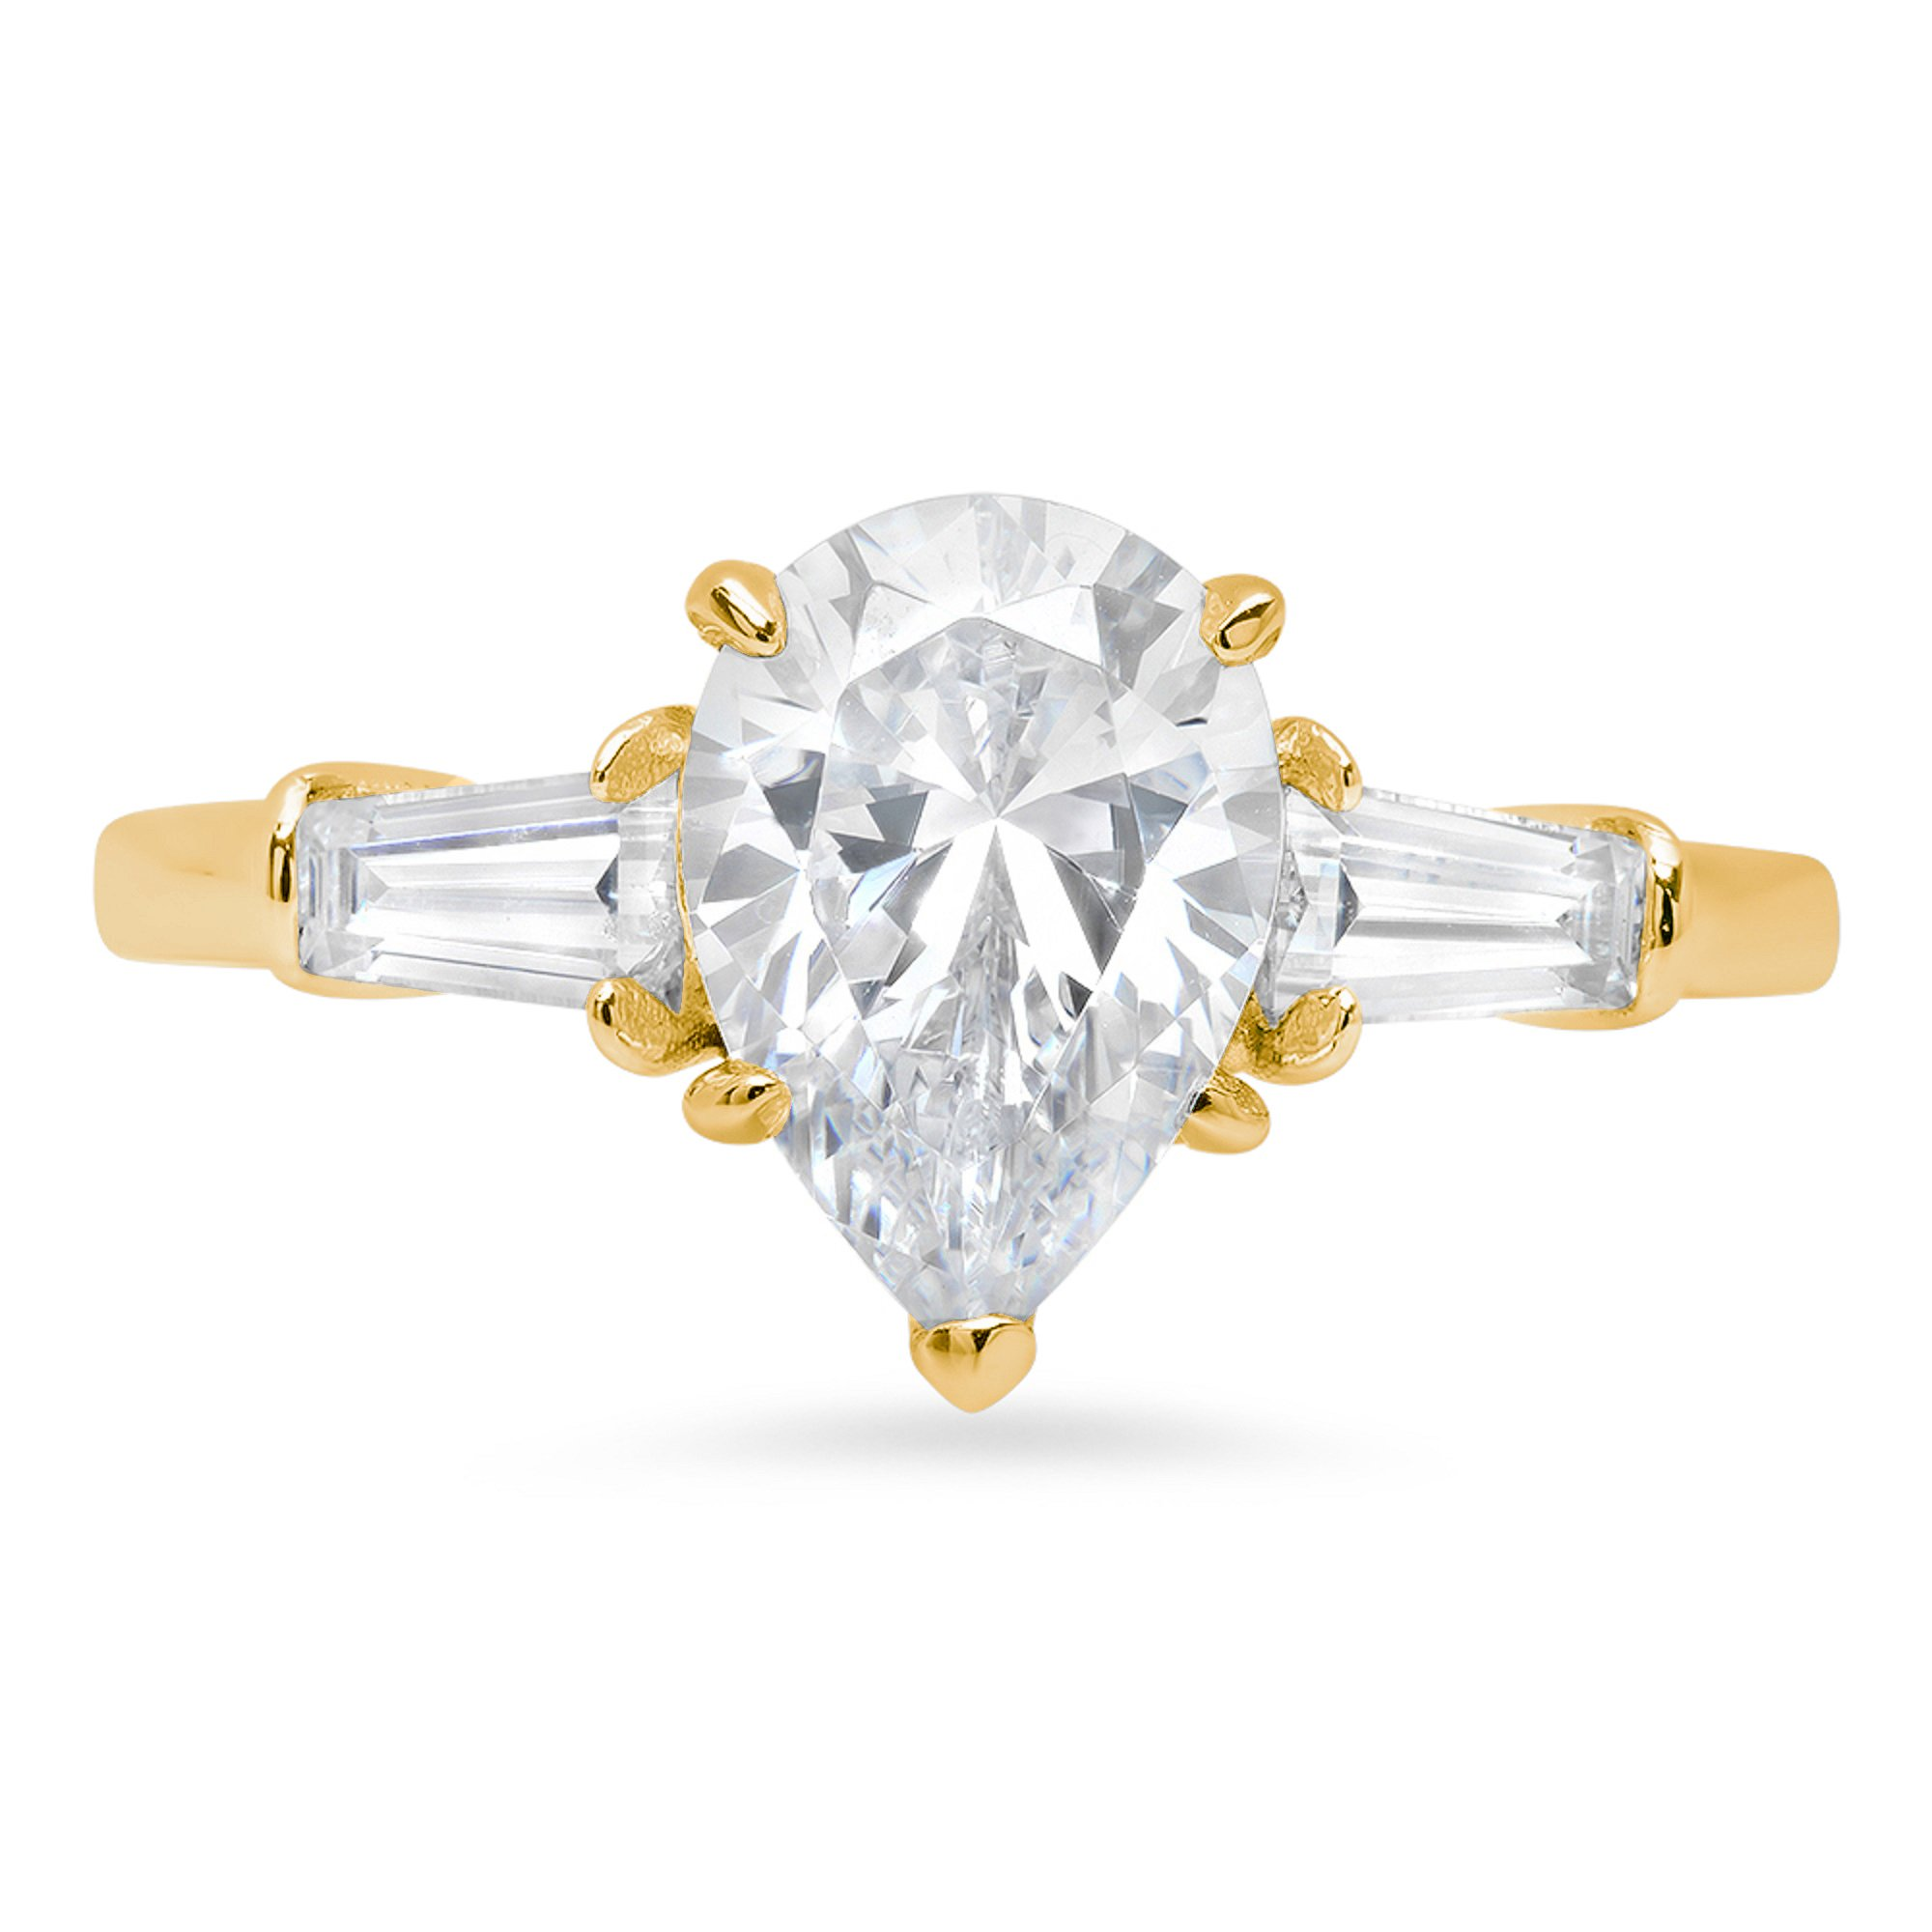 2.7ct Pear Baguette Brilliant Cut 3-Stone Statement Classic Designer Solitaire Anniversary Engagement Wedding Bridal Promise Ring Solid 14k Yellow Gold For Women, 7